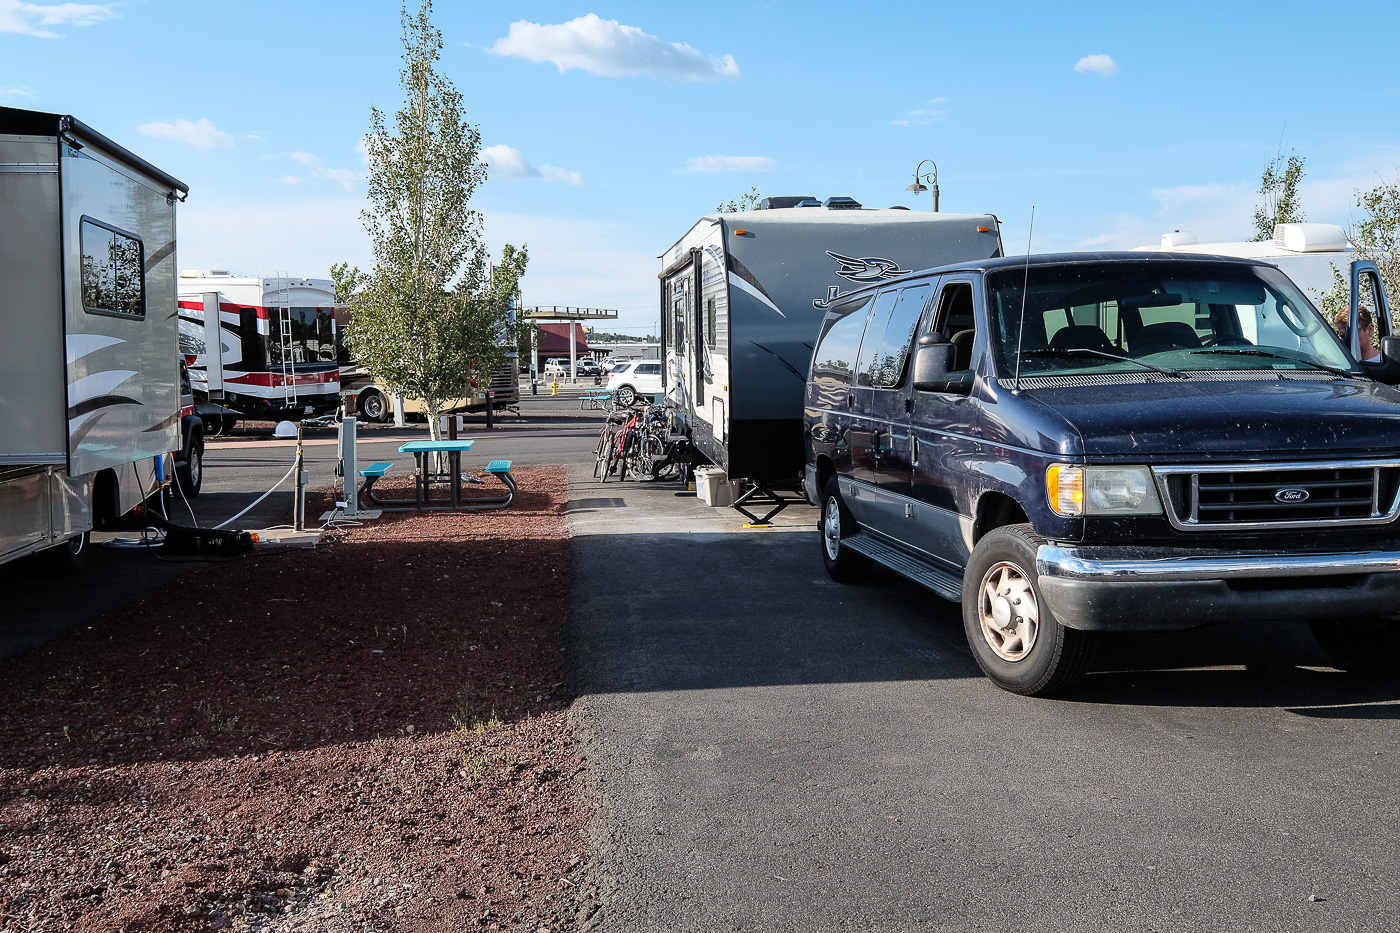 Grand Canyon Railway Rv Park Campground Review Boxy